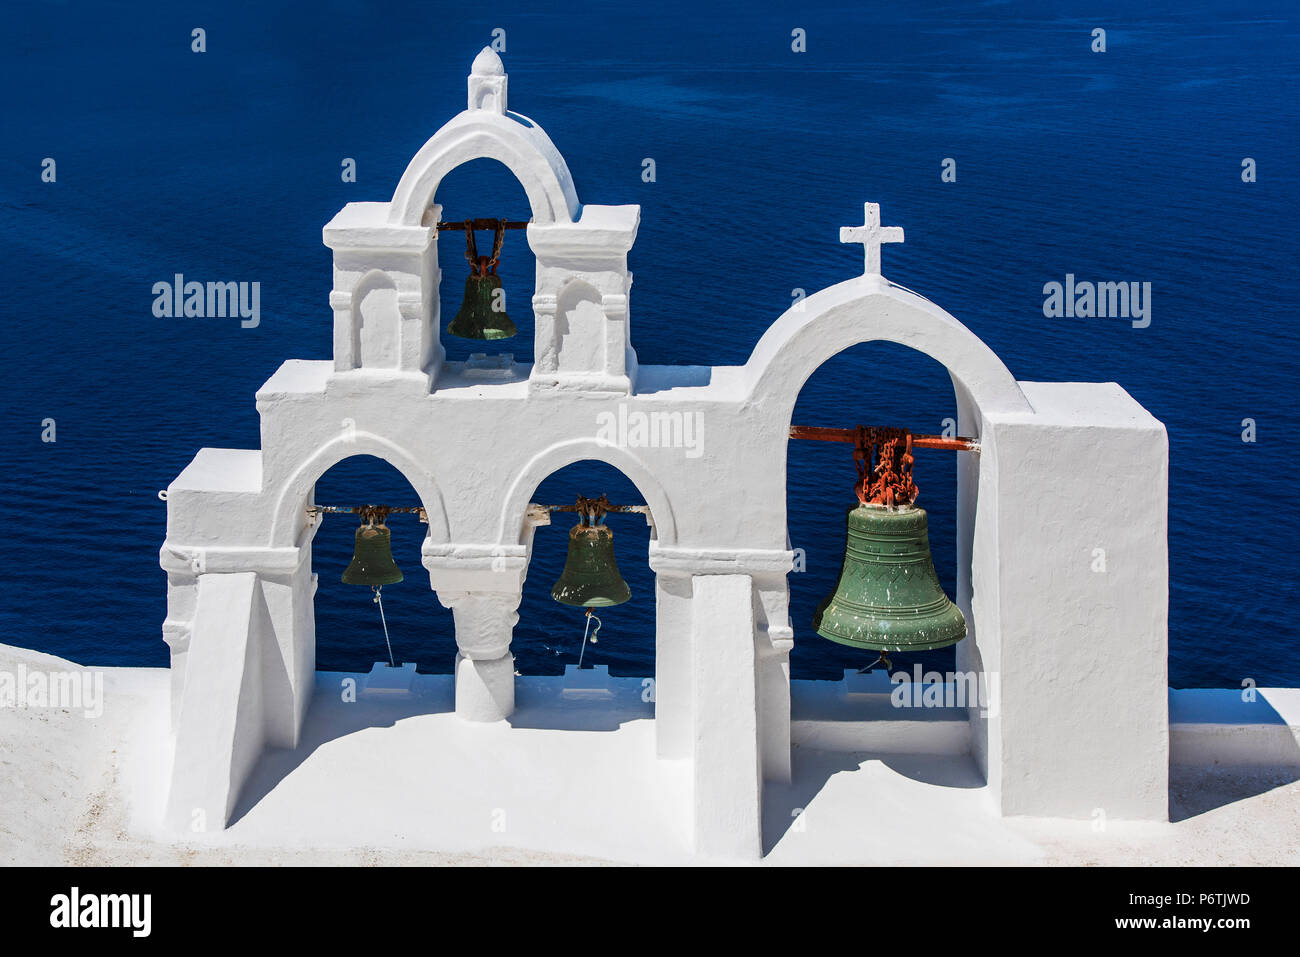 Typical Greek white befry, Oia, Santorini, South Aegean, Greece - Stock Image